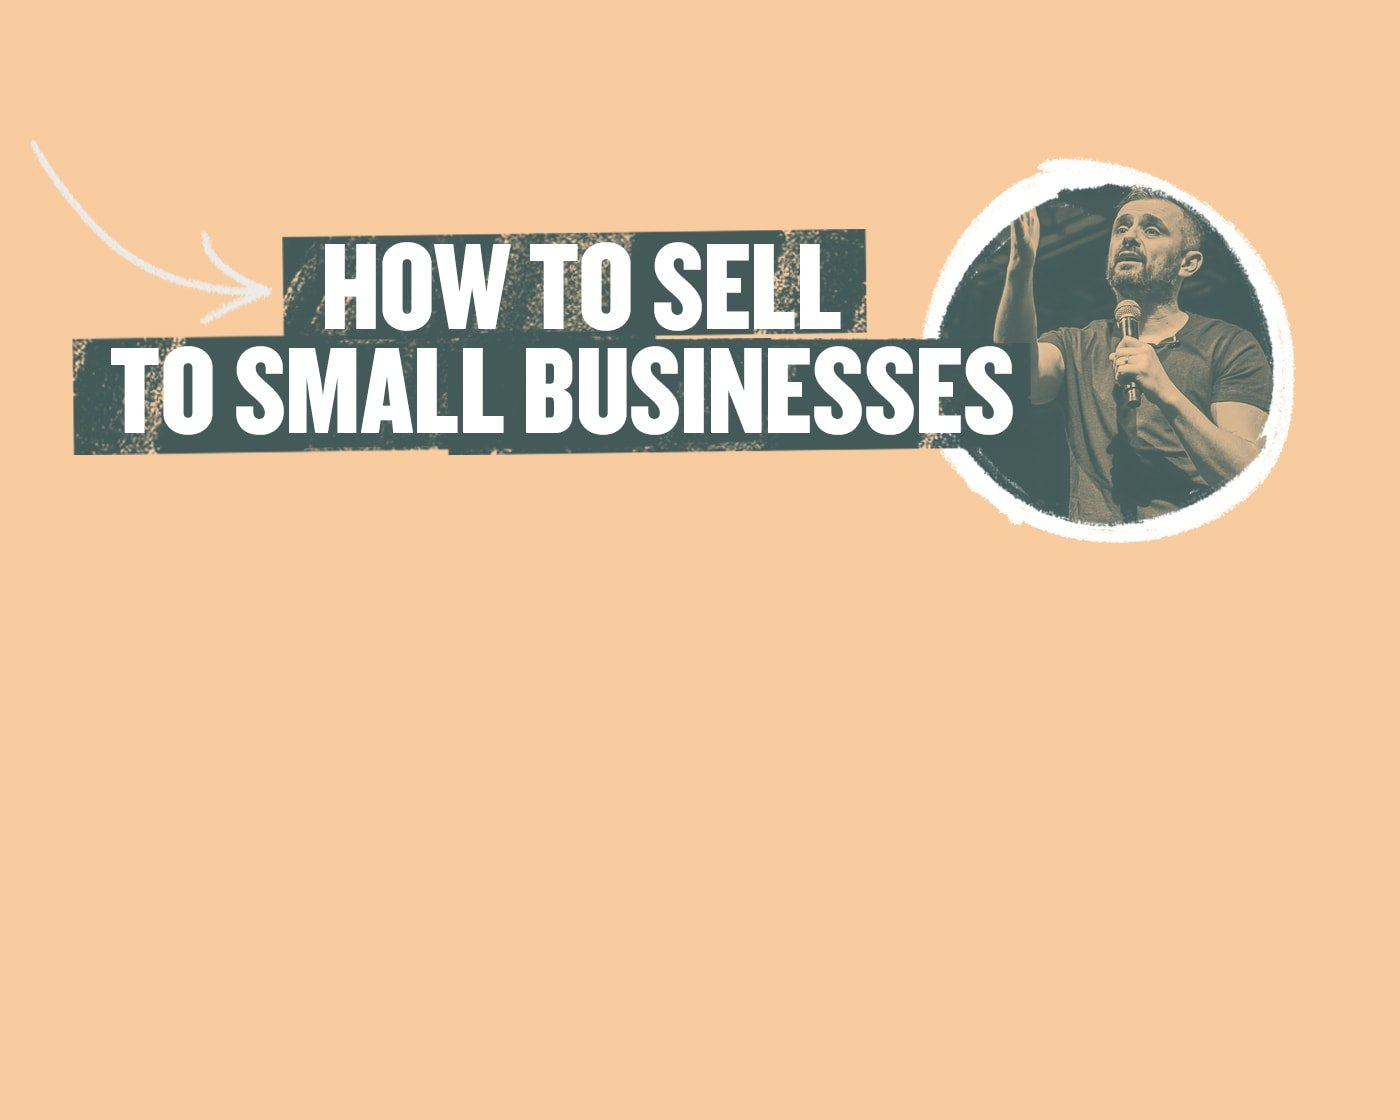 How to Sell to Small Businesses